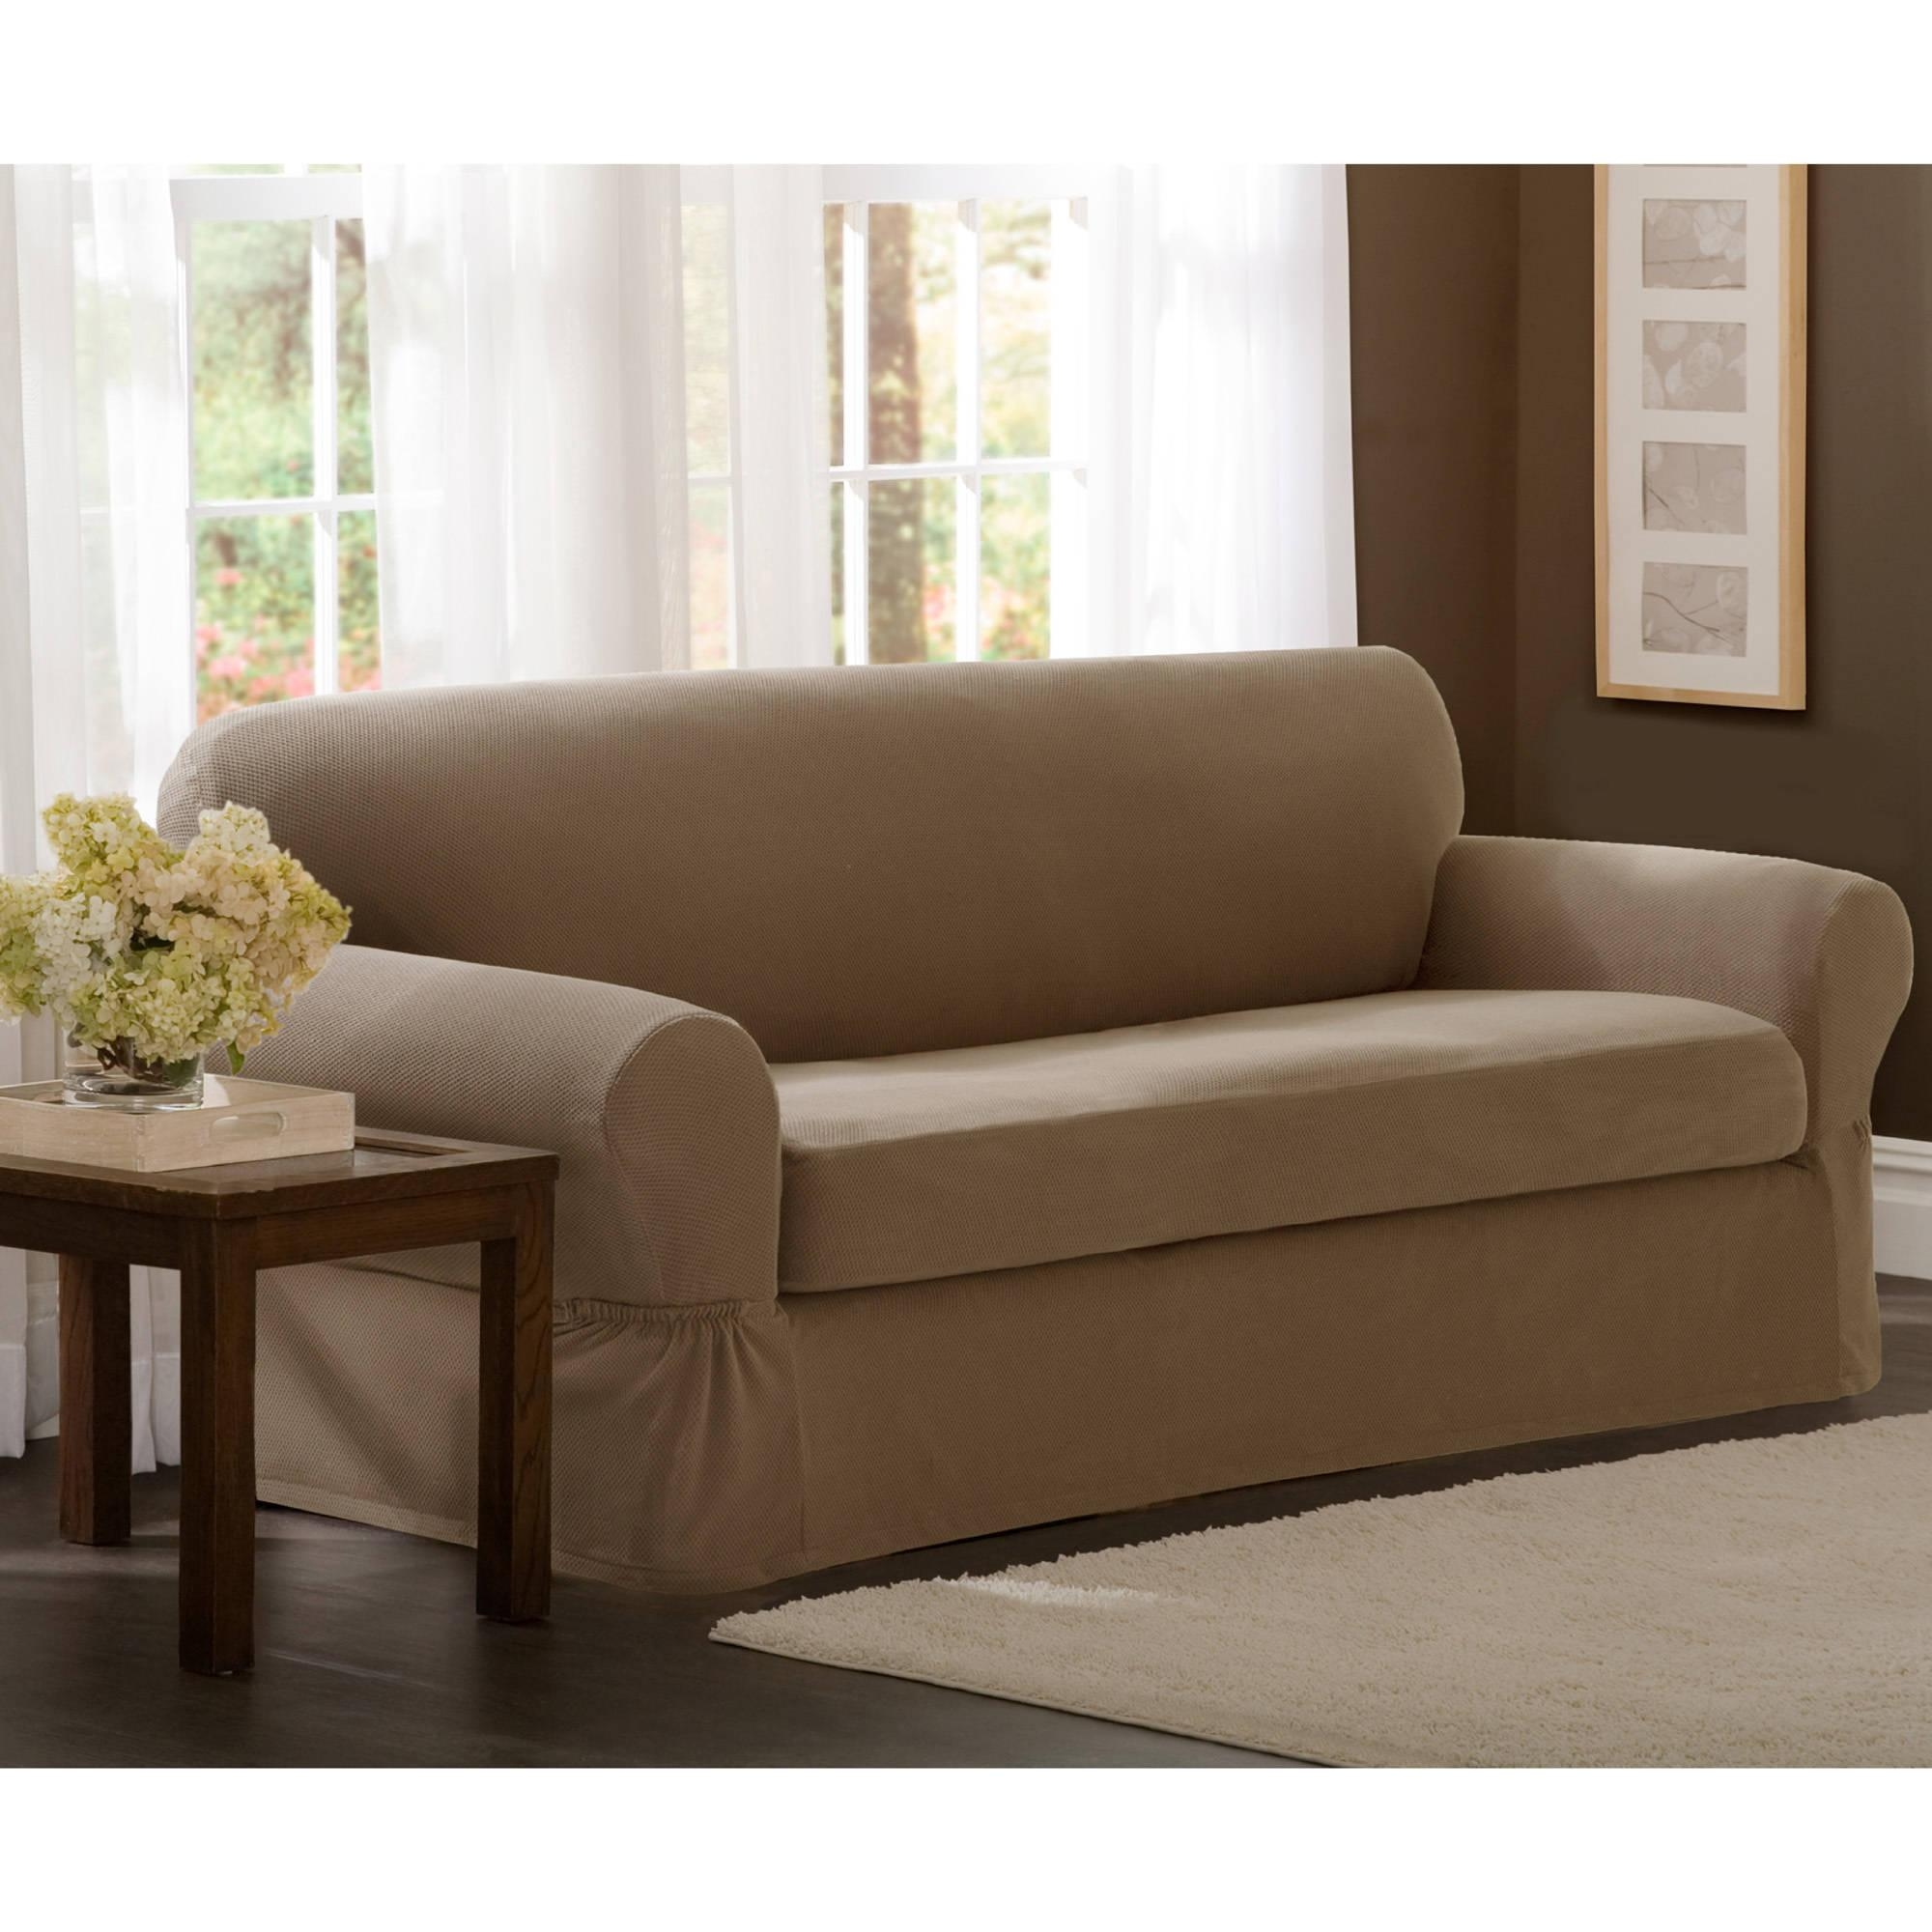 Maytex Stretch 2 Piece Sofa Slipcover – Walmart Intended For 2 Piece Sofas (View 7 of 20)